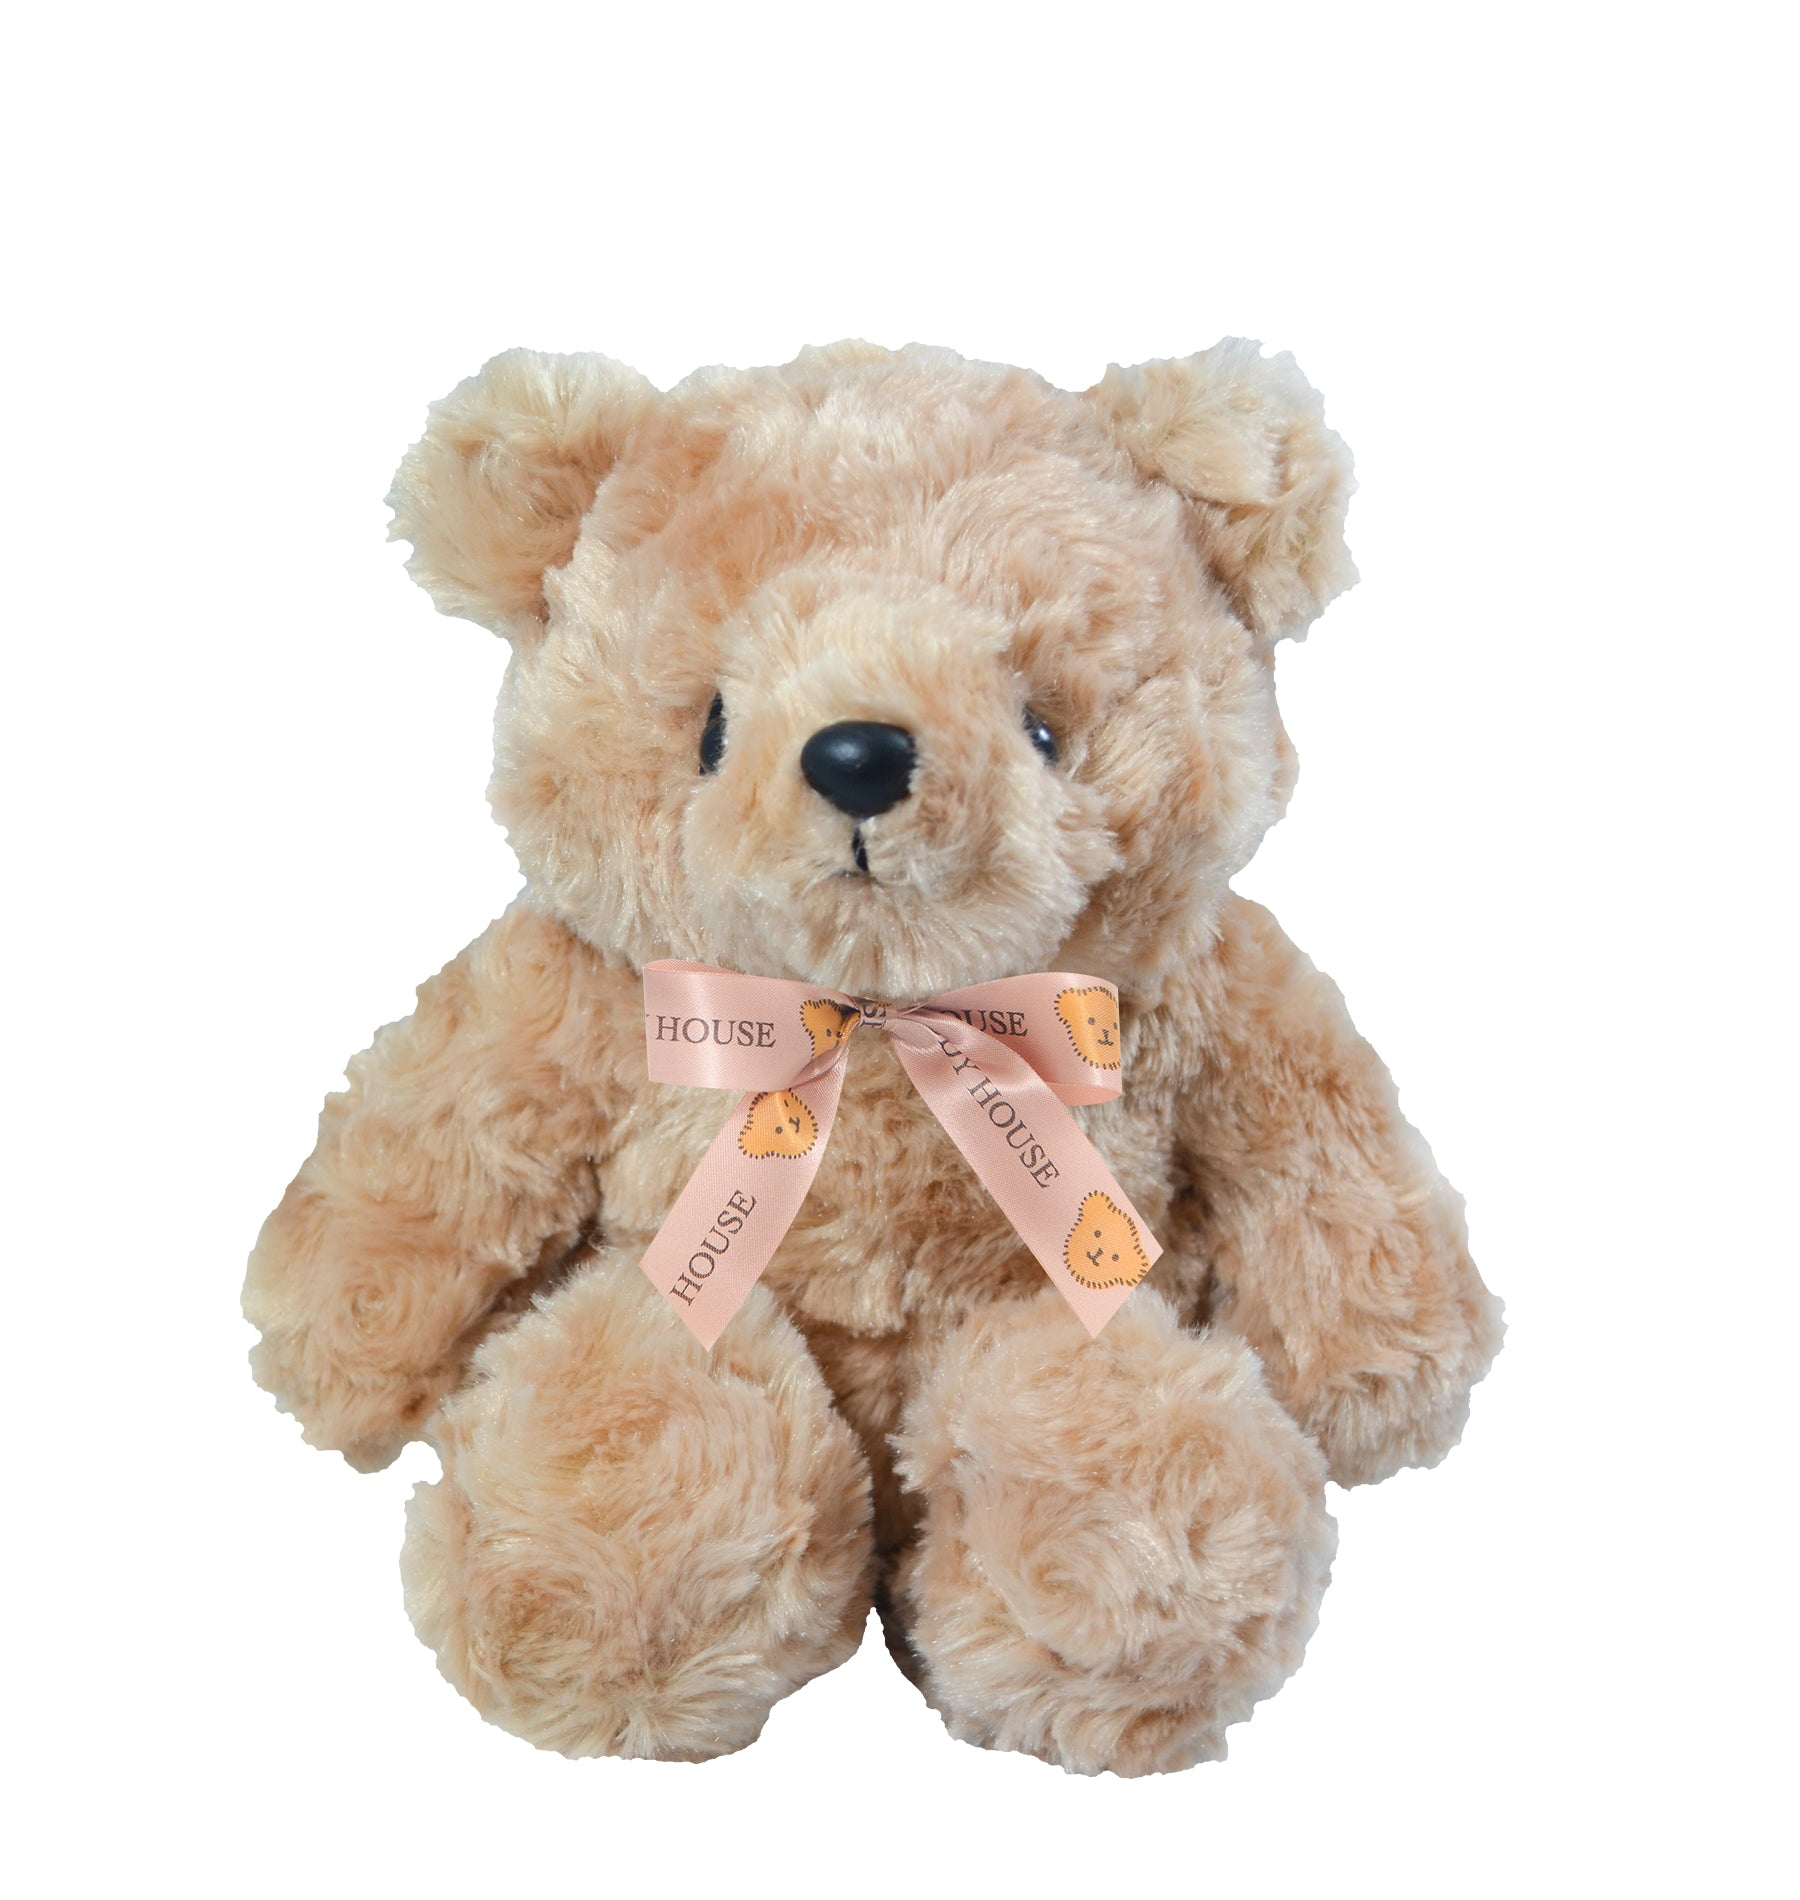 TEDDY HOUSE BONEKA TEDDY BEAR MARTIE BEAR 05 INCHI